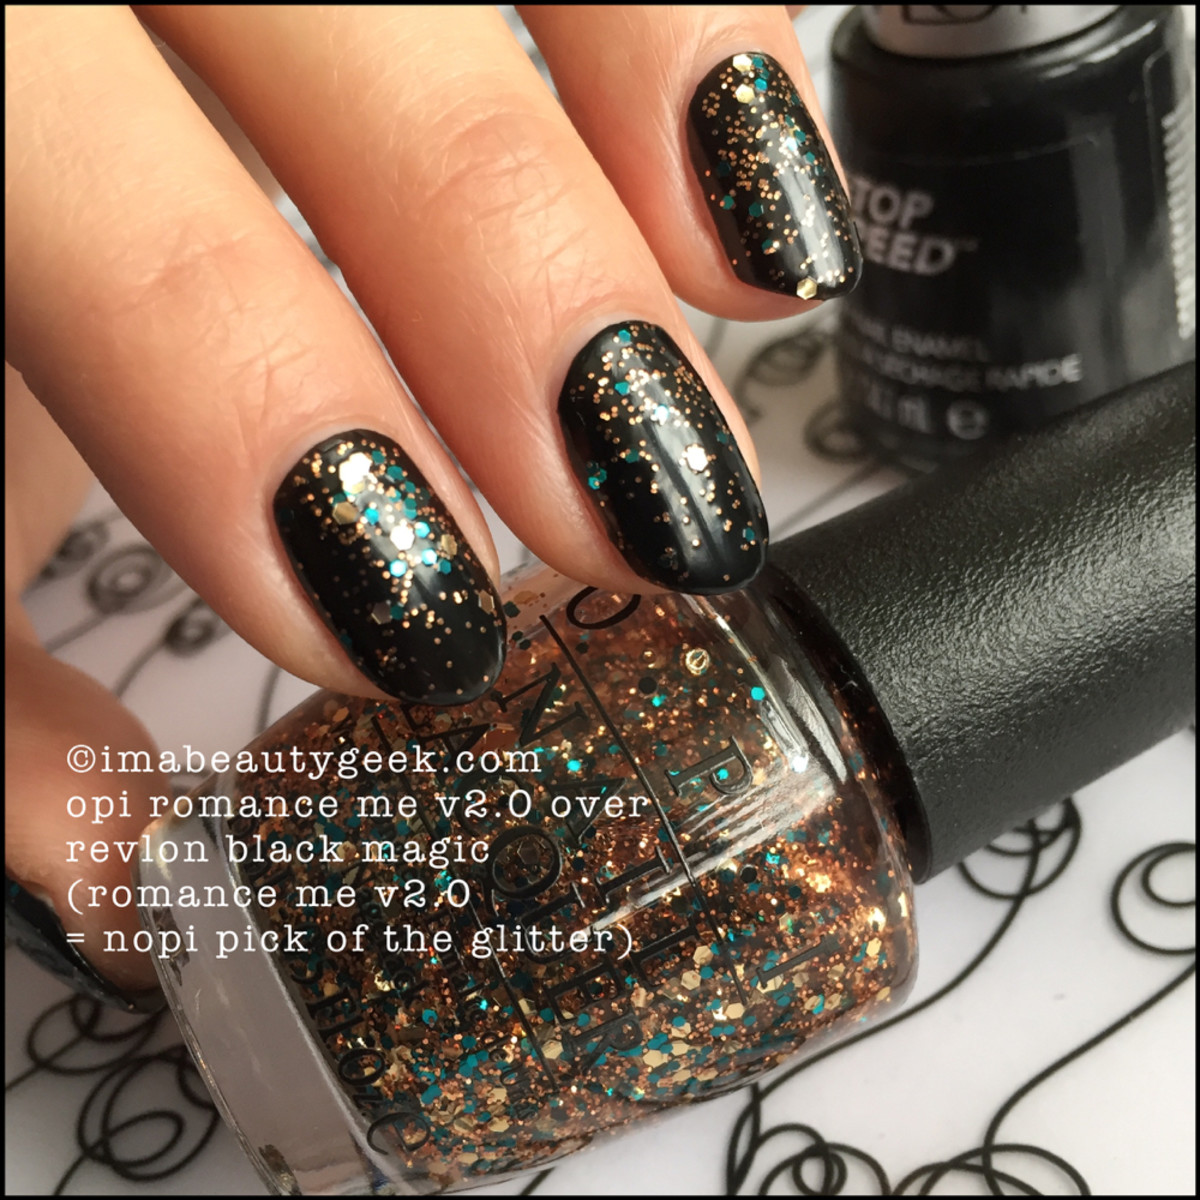 OPI Romance Me 922 over Revlon Black Magic Mystery OPI